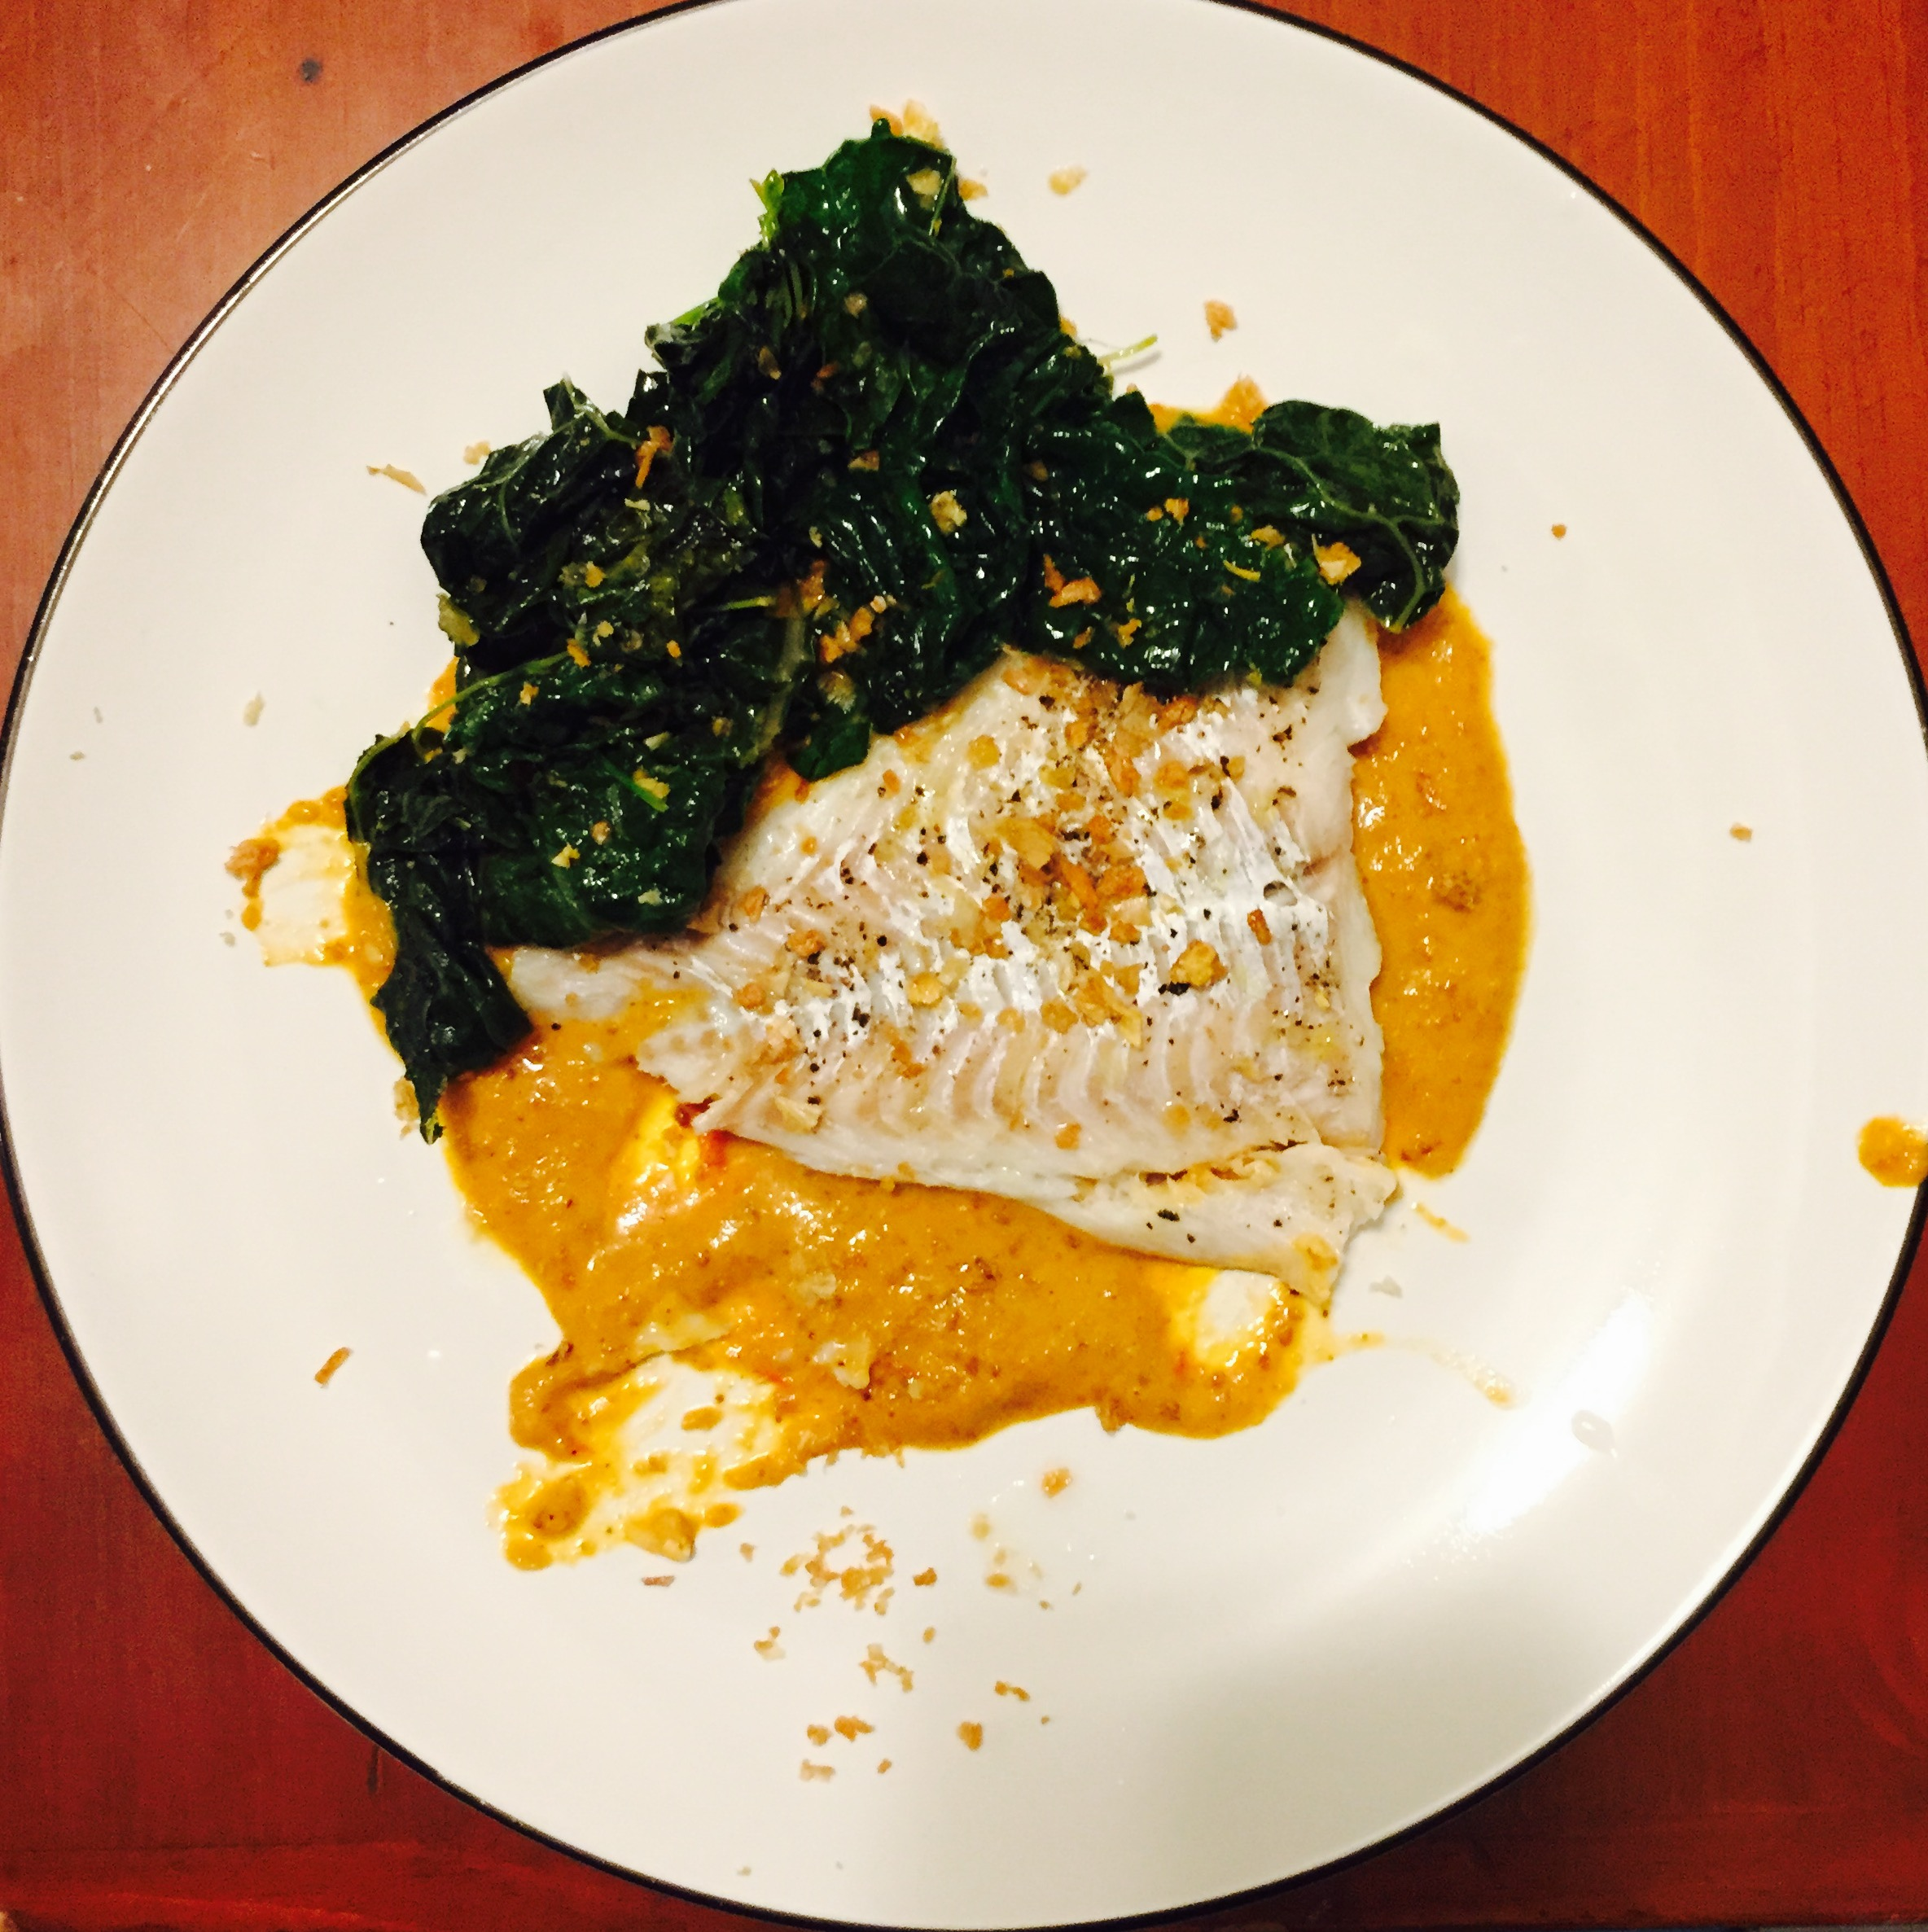 Steamed haddock with kale, bagna cauda and fried garlic.